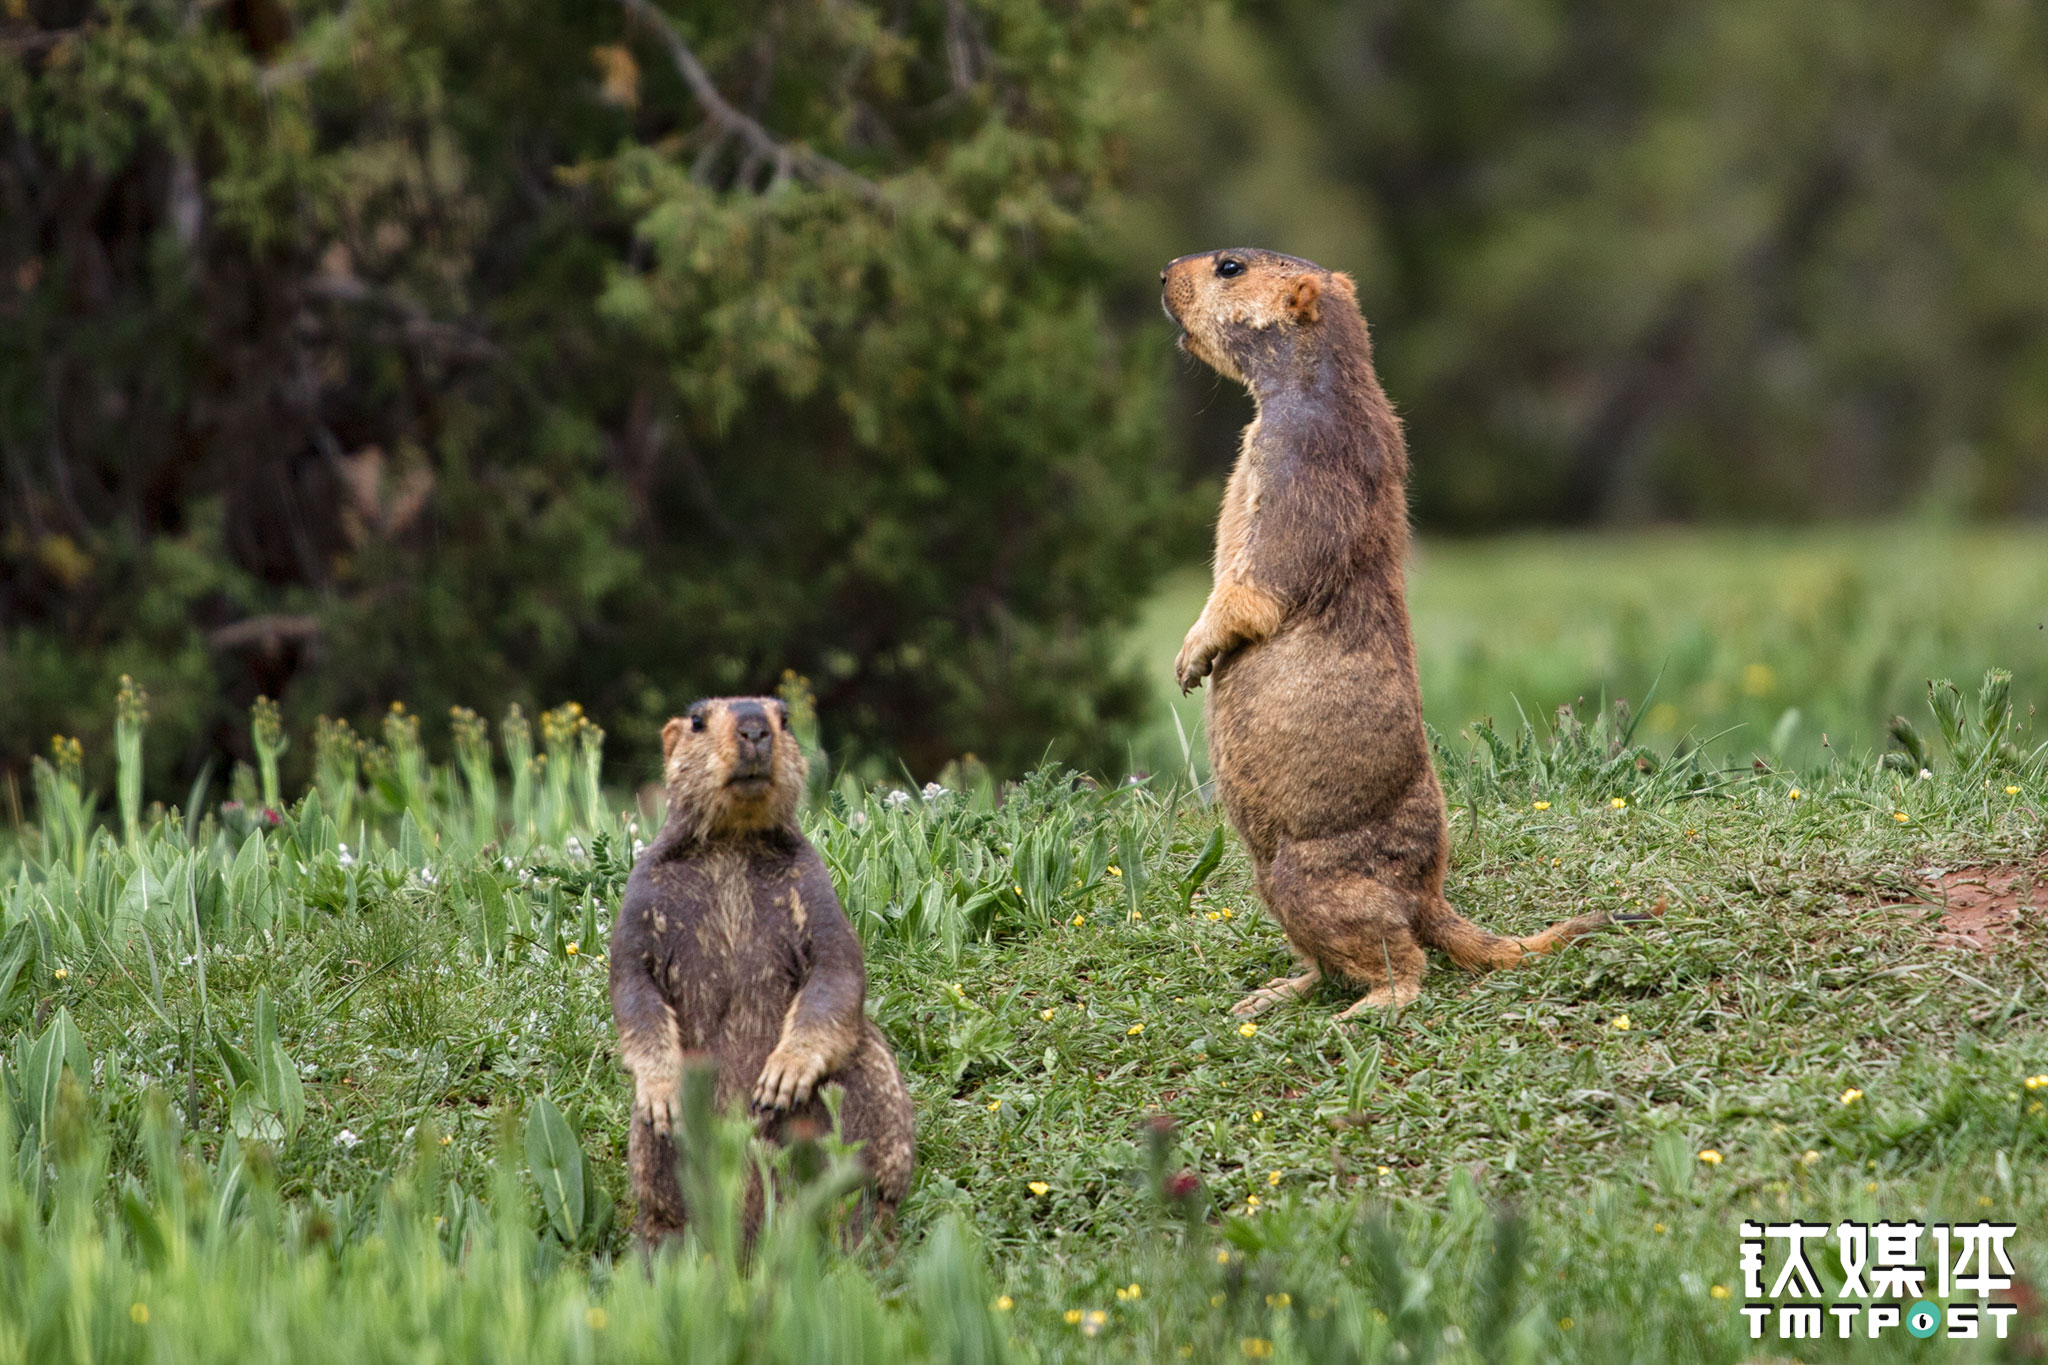 In the camp, two marmots were taking a peep at the humans. In this grassland where wild flowers blossom, marmots had set up their homes here. These little animals didn't seem to be scared by the presence of humans.